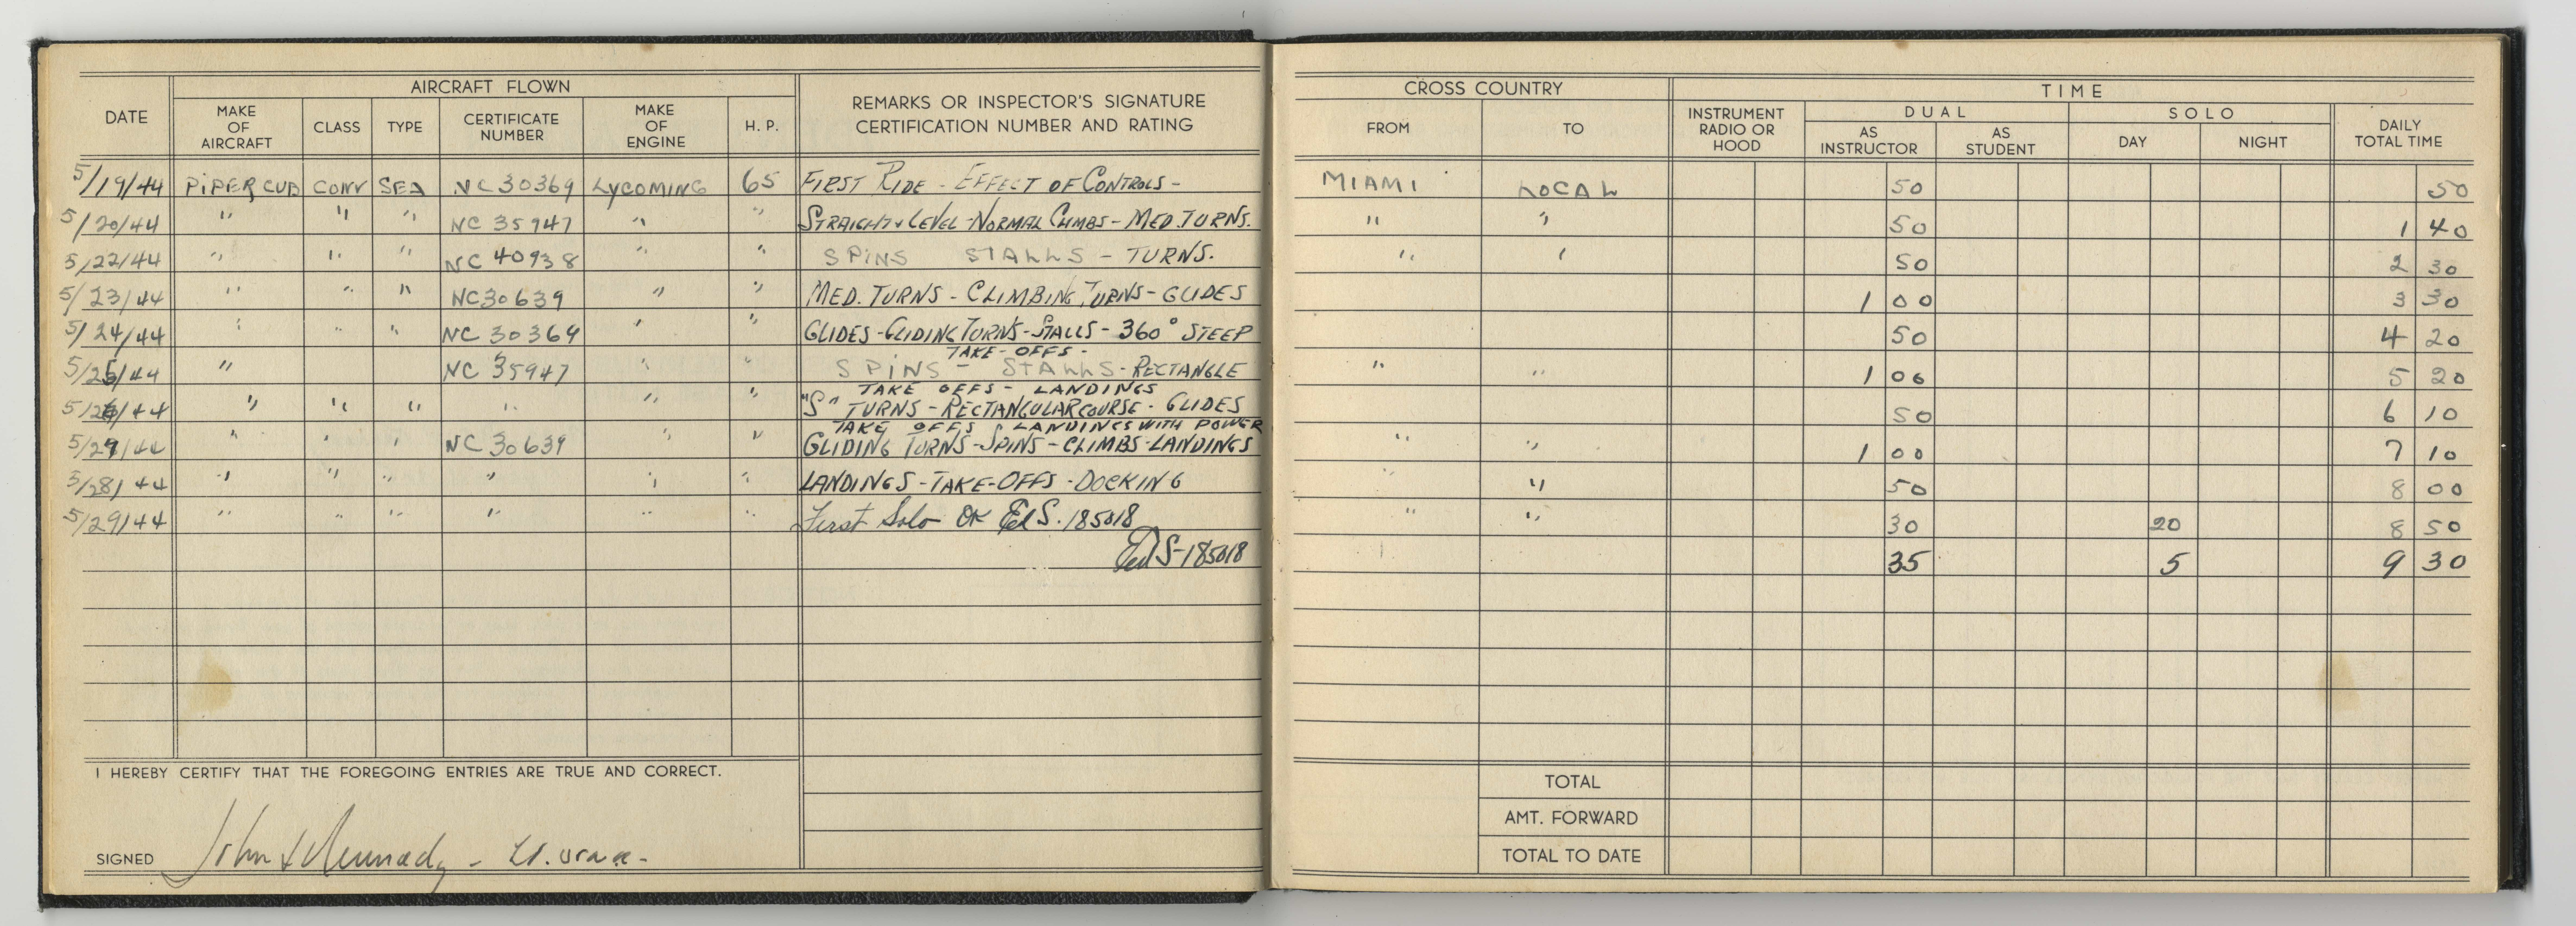 Rare, Seemingly Singular Evidence, That John F. Kennedy Knew How to Fly: His 1944 Flight Logbook